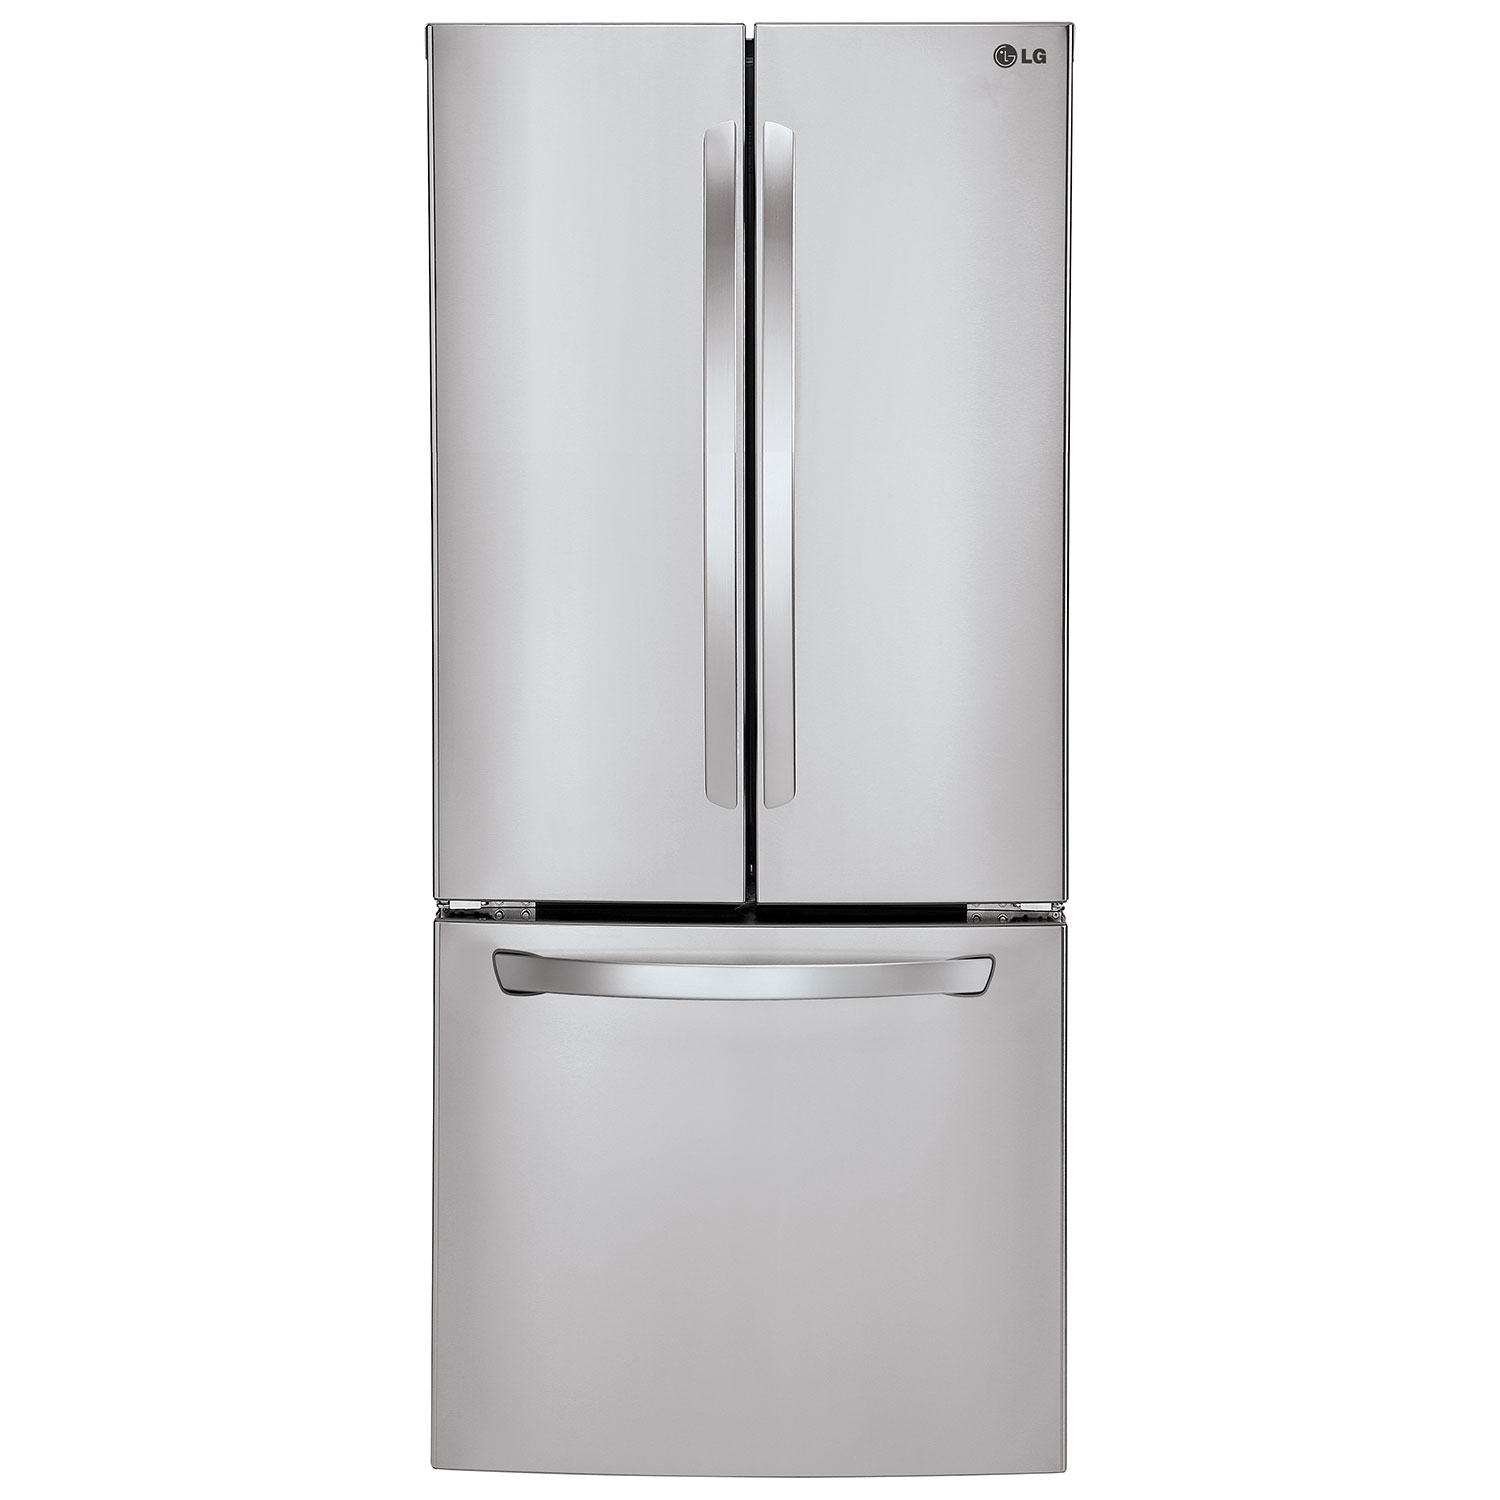 white refrigerator french door. ft. french door refrigerator - stainless steel : refrigerators best buy canada white t